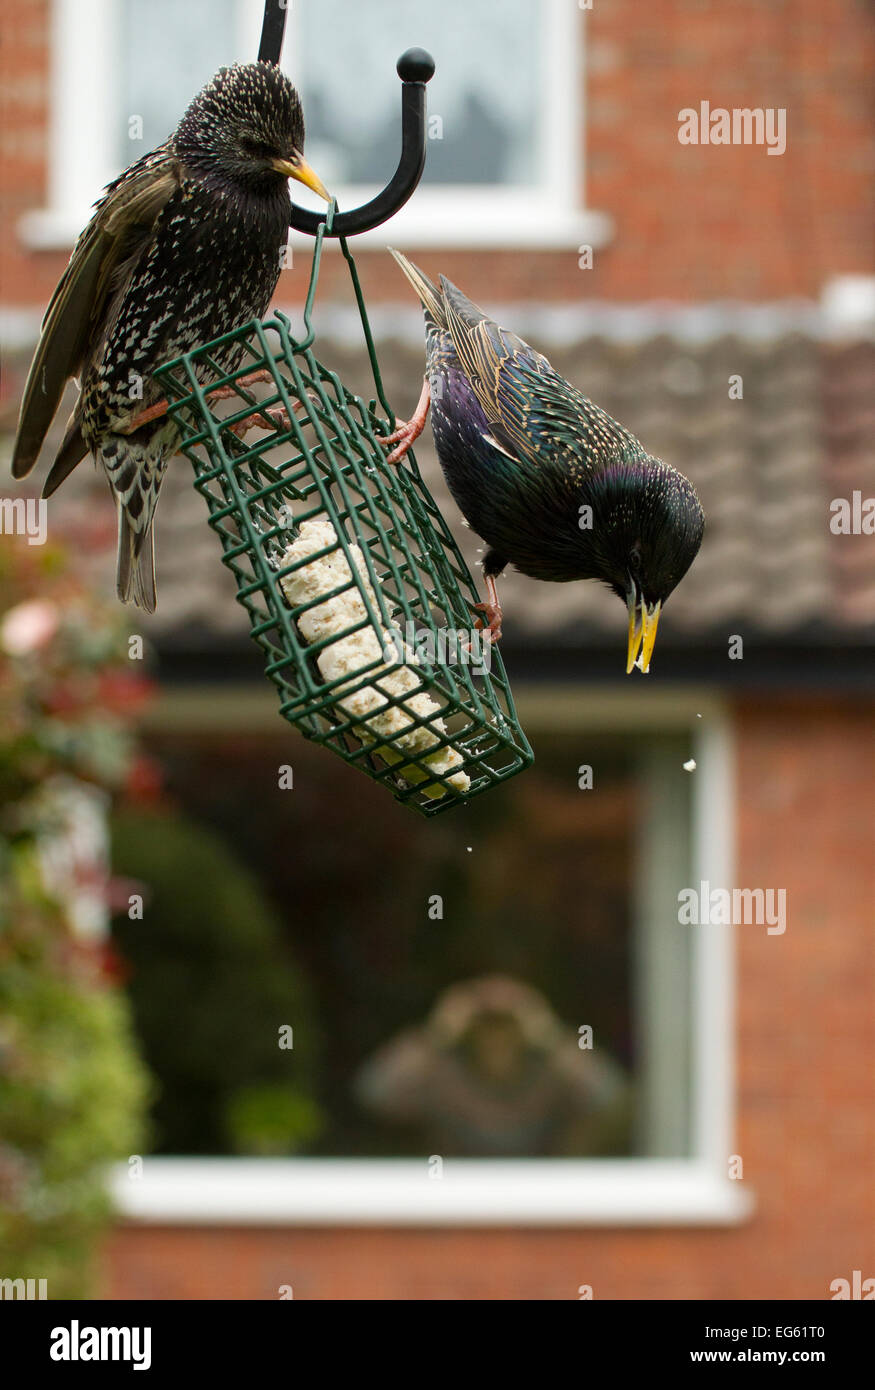 Common starling (Sturnus vulgaris) on bird feeder with man in background watching through house window with binoculars, - Stock Image